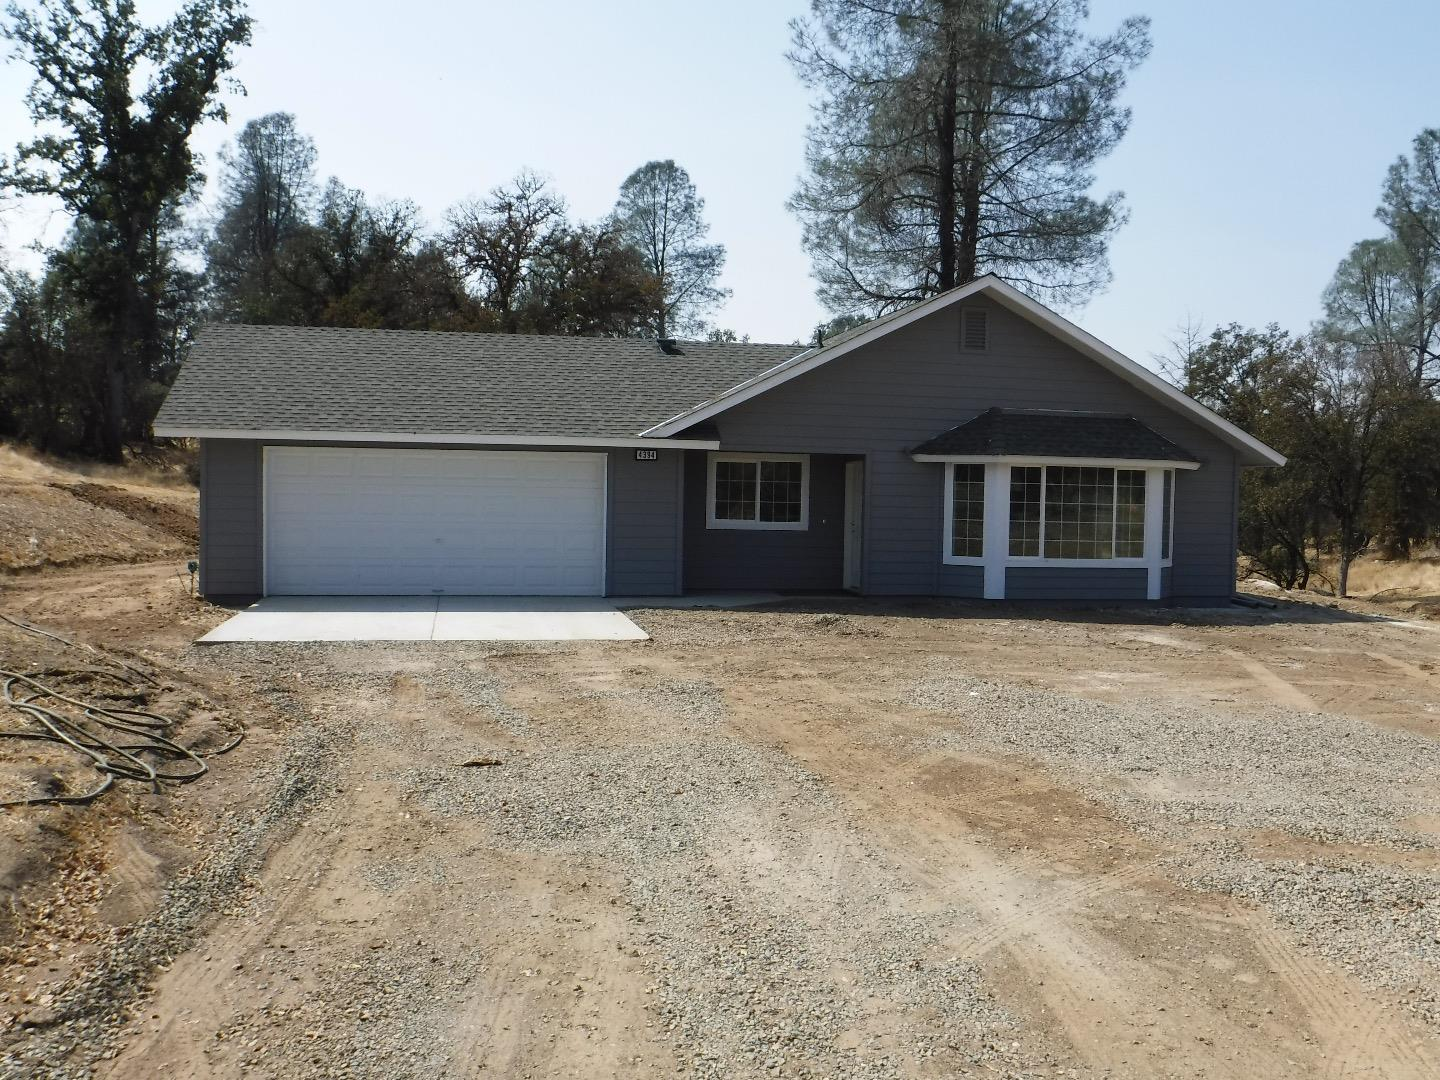 Single Family Home for Sale at 4394 Burl Drive Mariposa, California 95338 United States